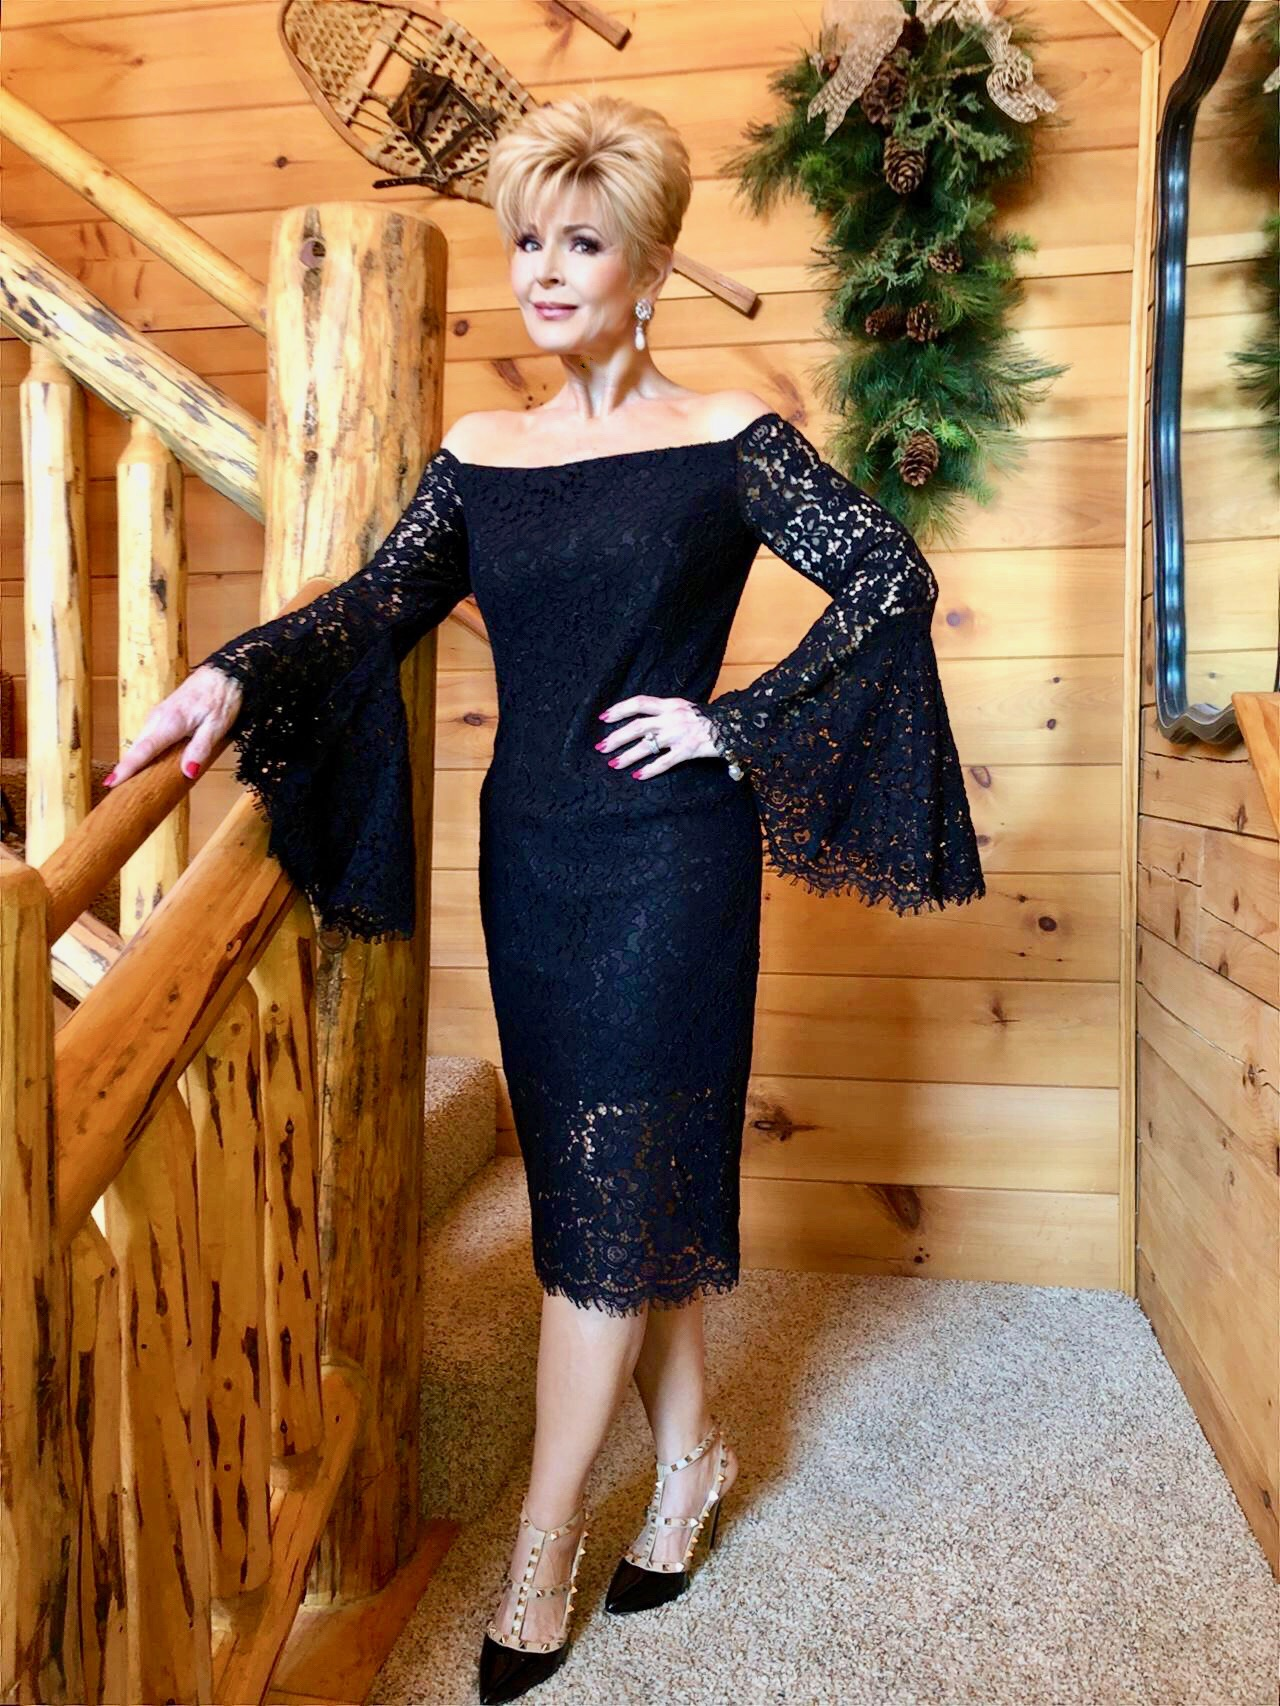 Ontrend50On trend fashion for women over 50The Best Little